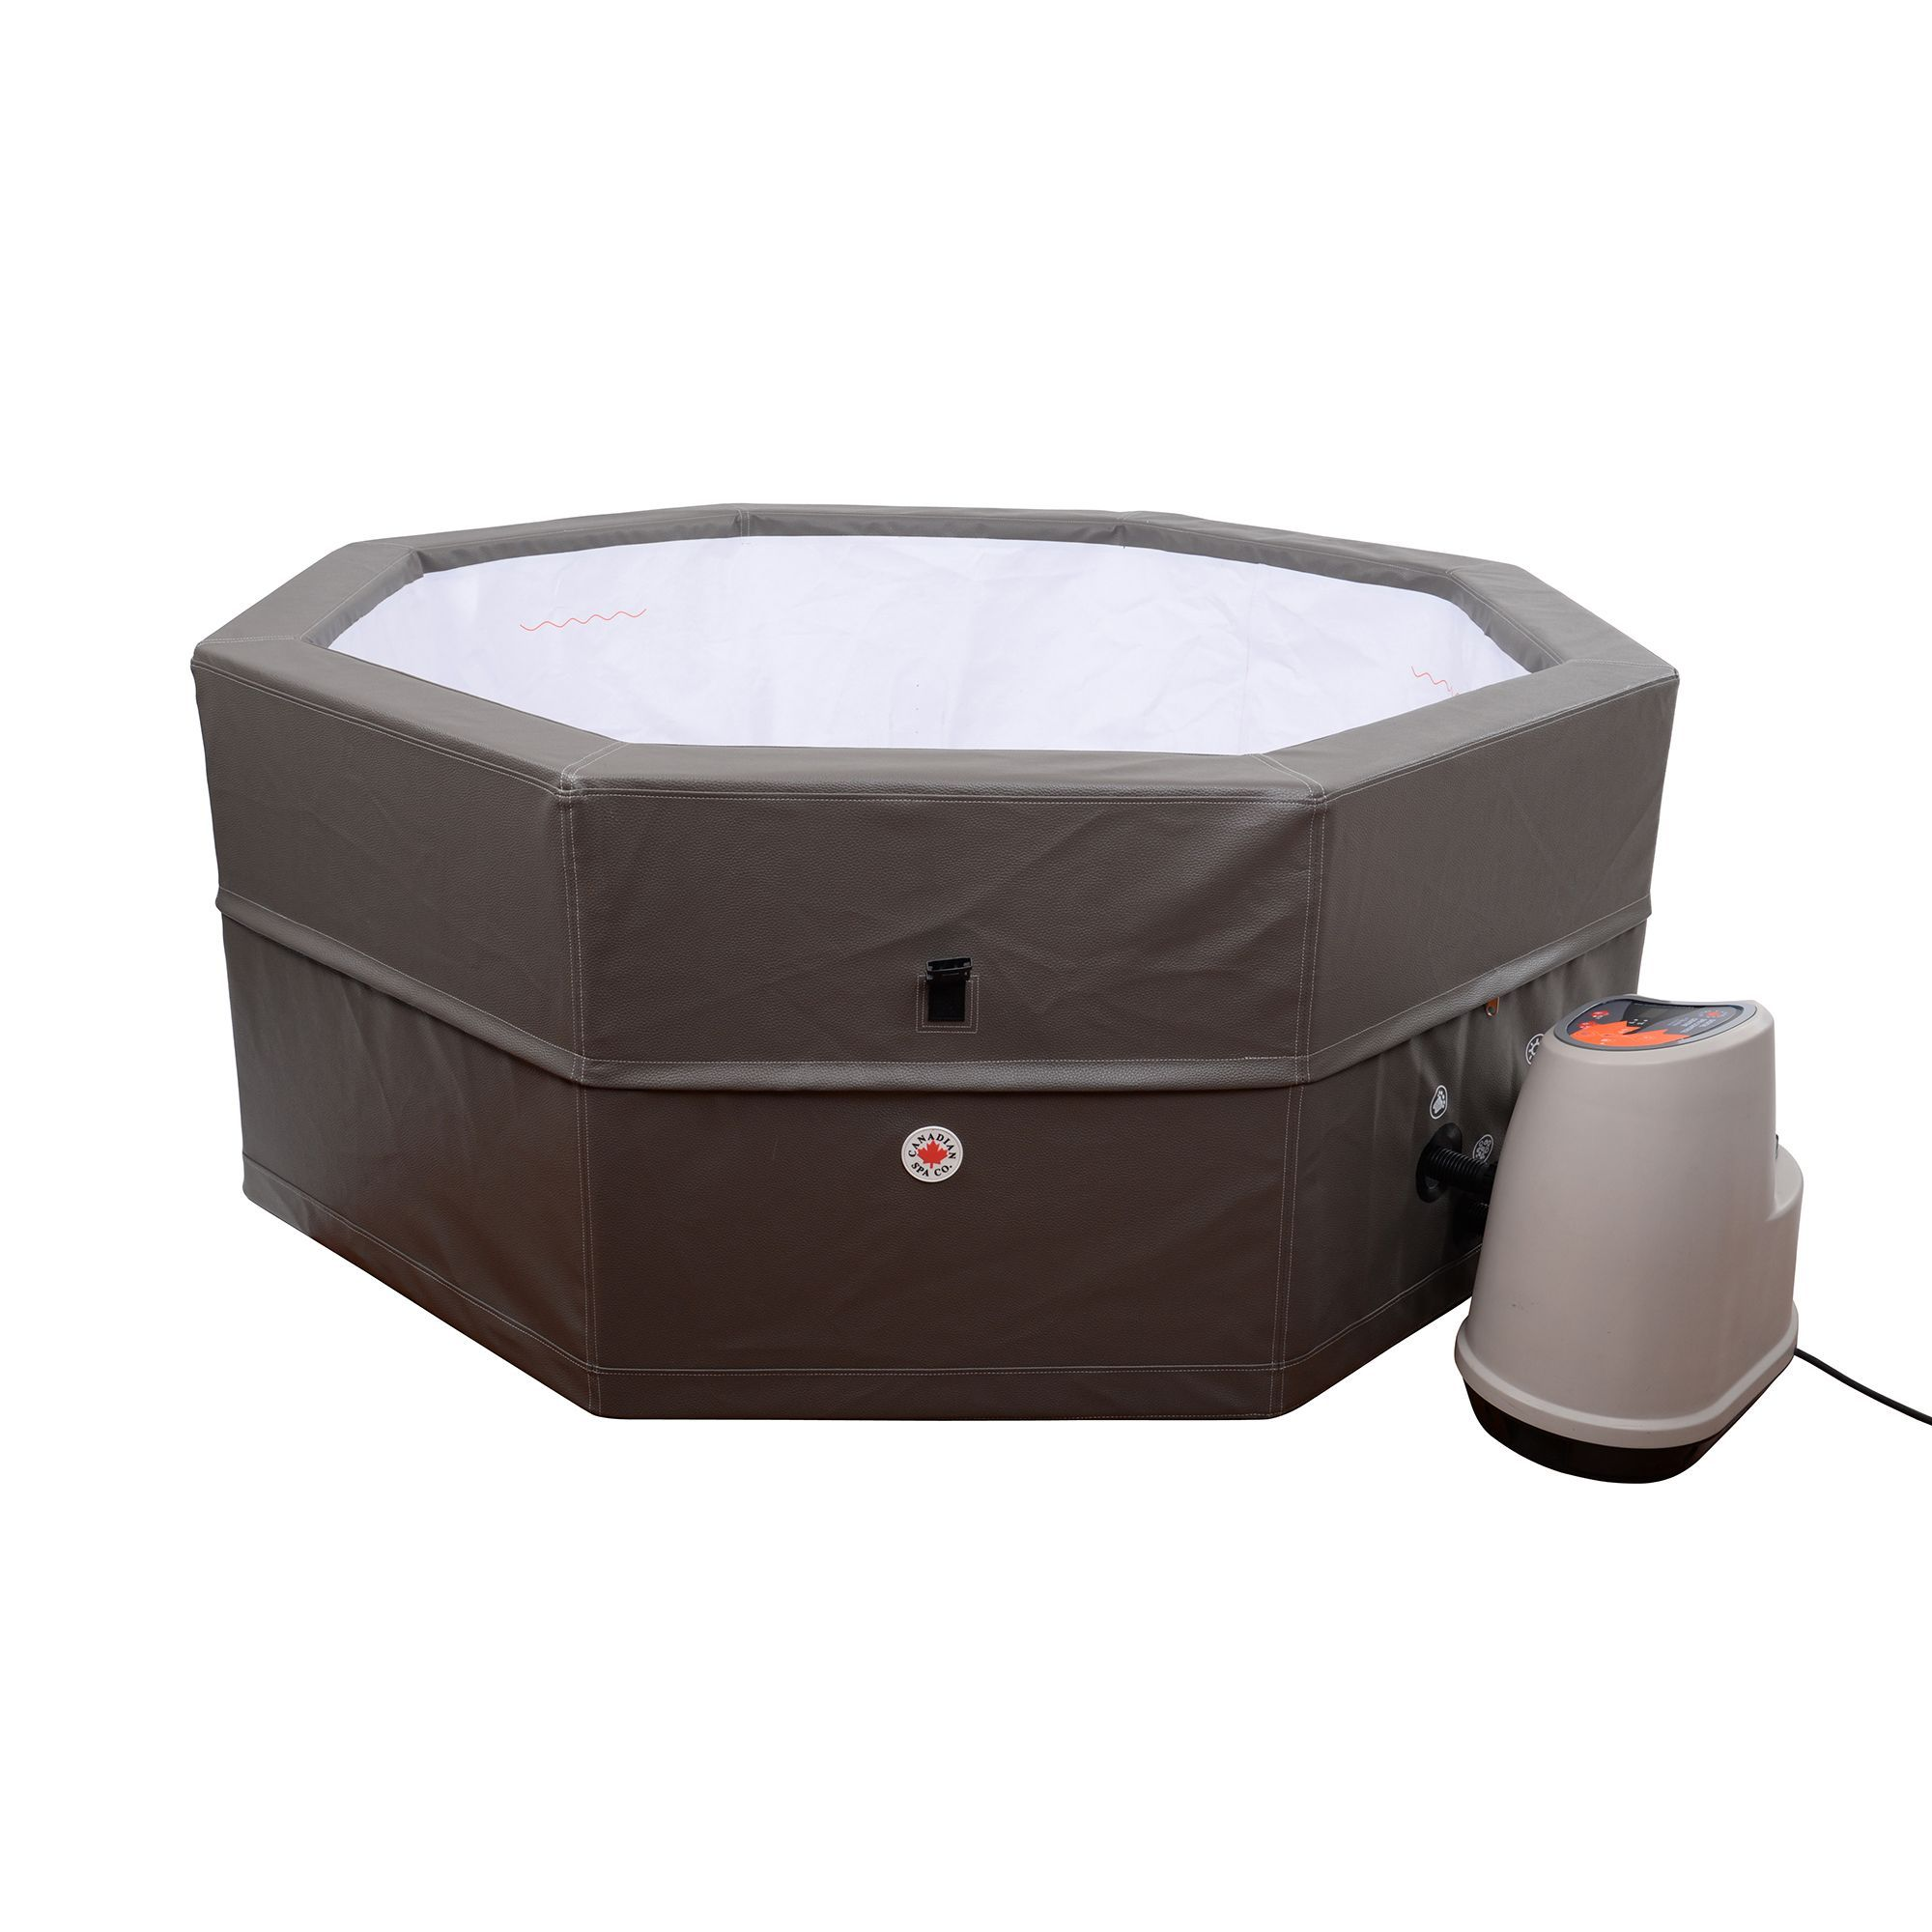 Canadian Spa Company Muskoka 2 7 Person Portable Spa